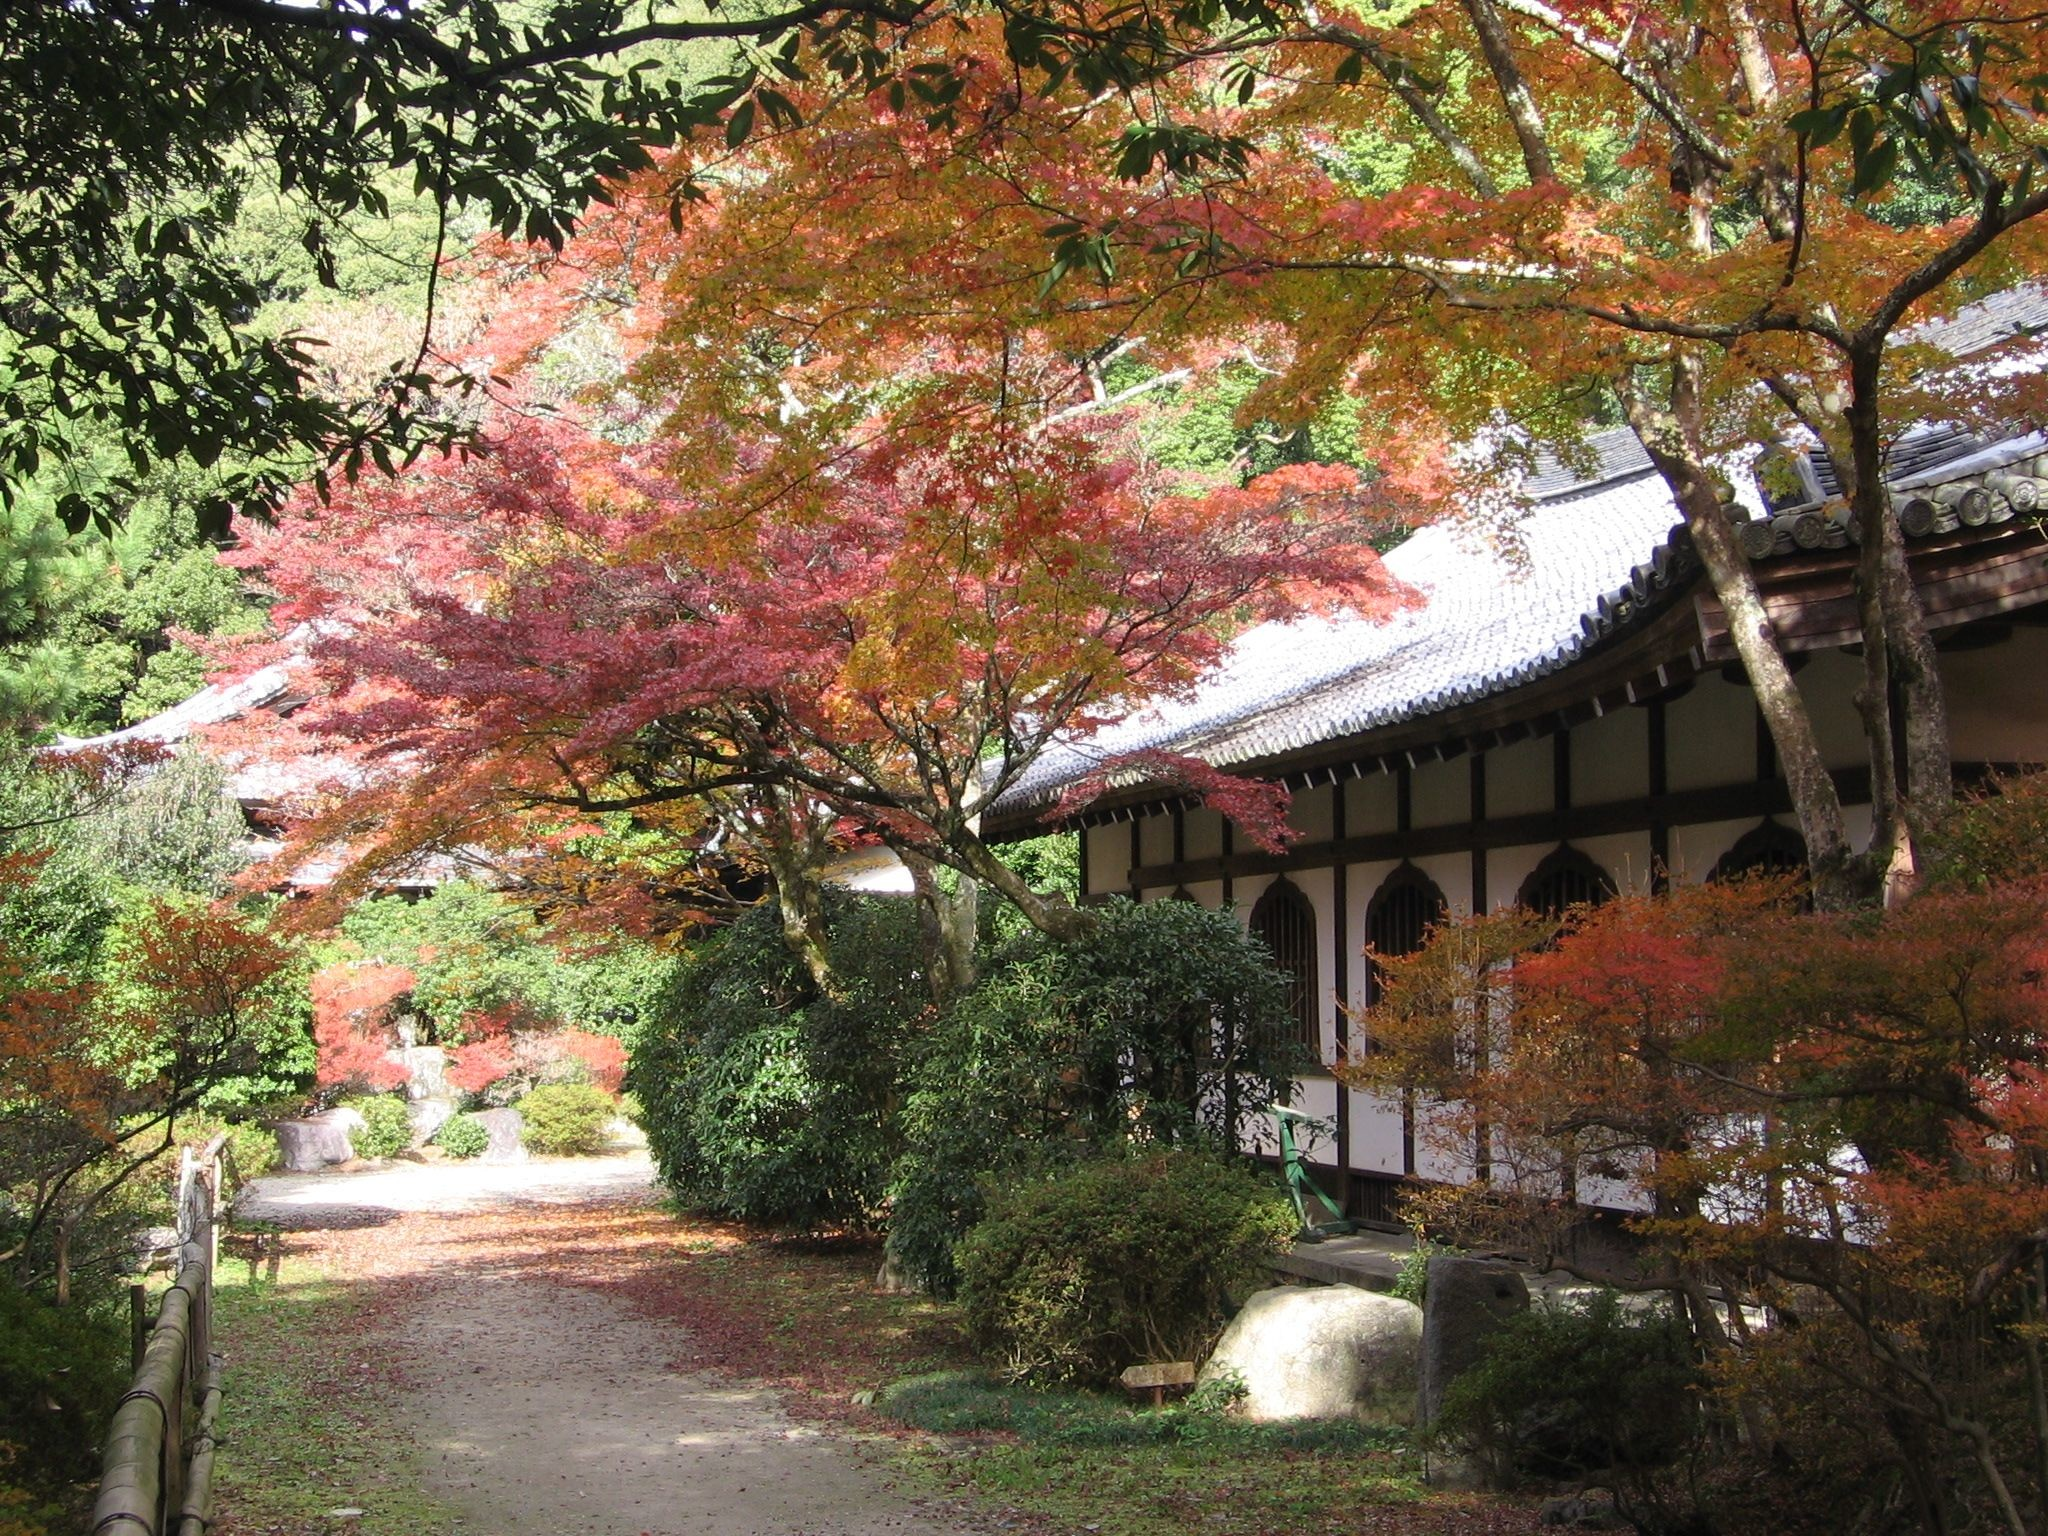 Res: 2048x1536, japanese | Japan Wallpapers and Images: Japanese Temple Scenery Wallpapers